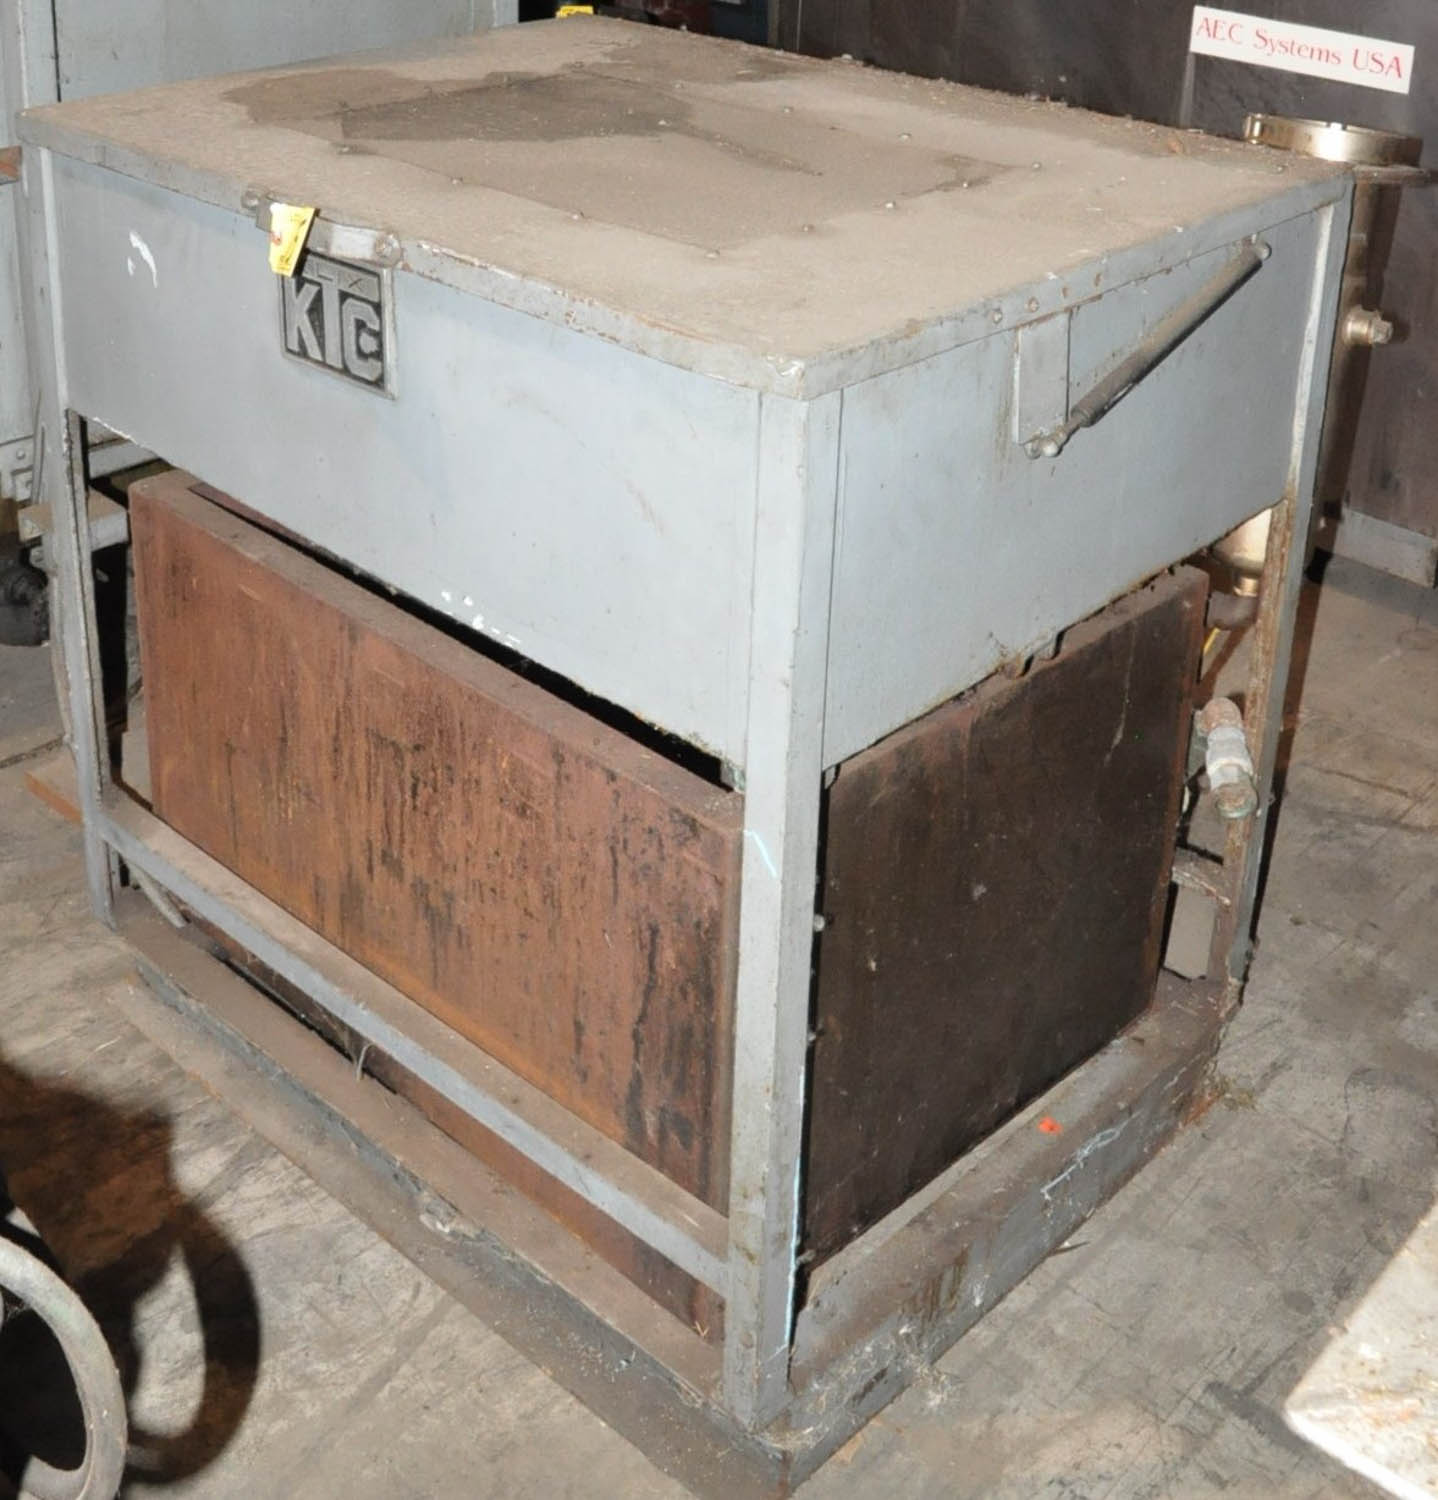 Lot 375 - INSTRON MDL. FM-1E, BENCH TOP COMPUTERIZED HARDNESS TESTER, S/N: FM1121, WITH COMPUTER, MONITOR